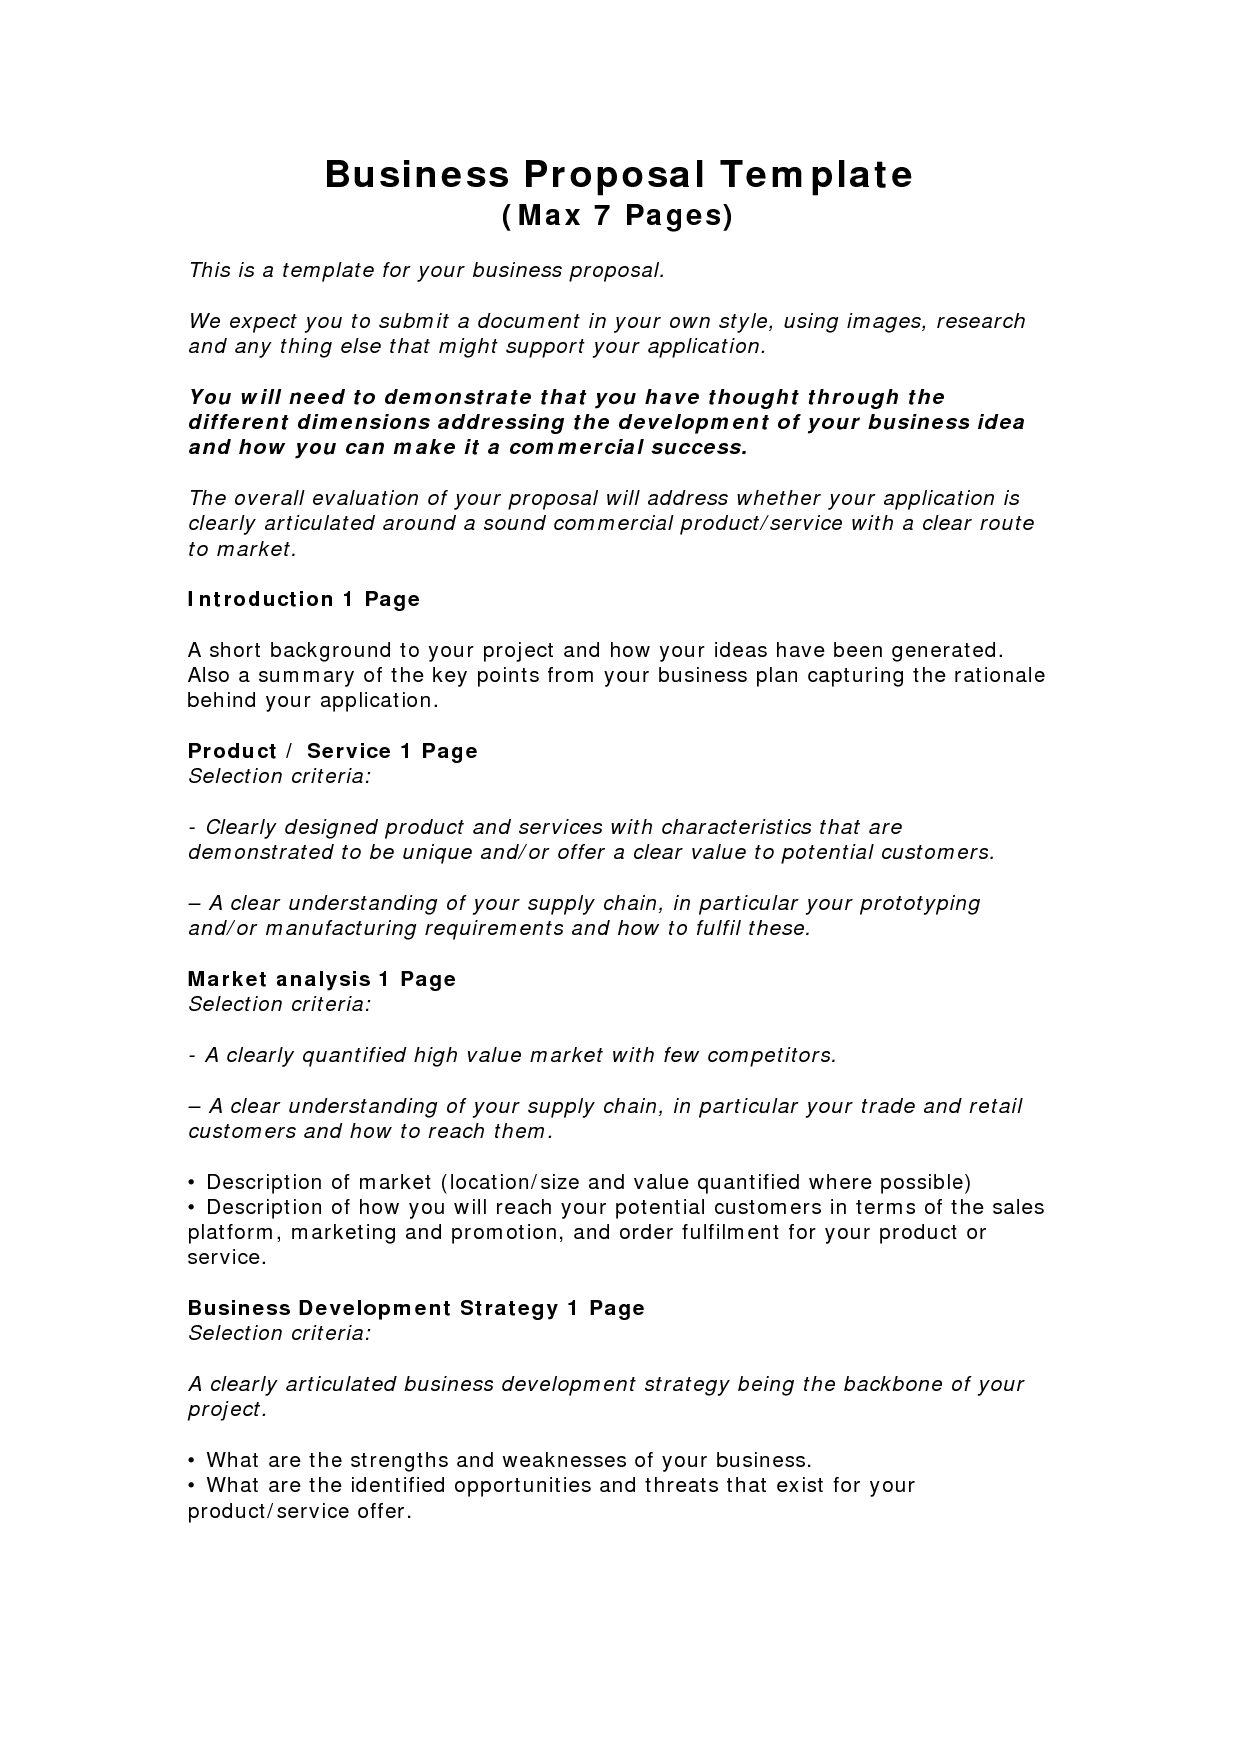 Wonderful Business Proposal Templates Examples | Business Proposal Template (Max 7  Pages)   PDF